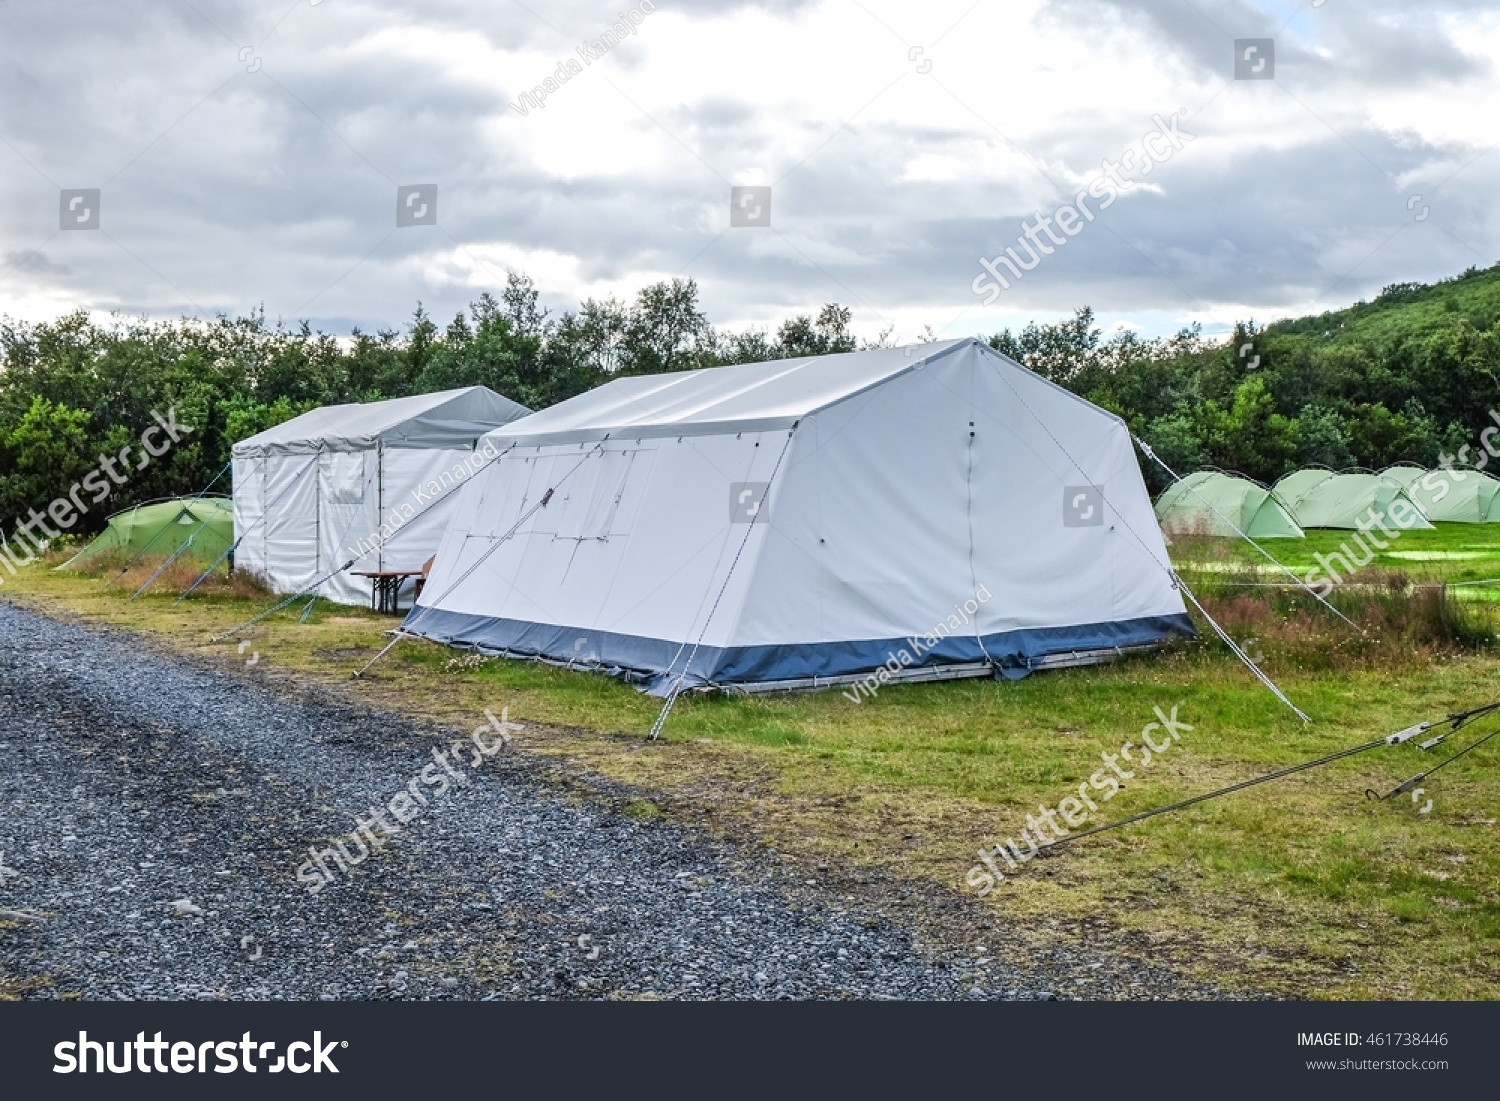 Big white tent for facilities with small tent in forest. & Big White Tent Facilities Small Tent Stock Photo 461738446 ...